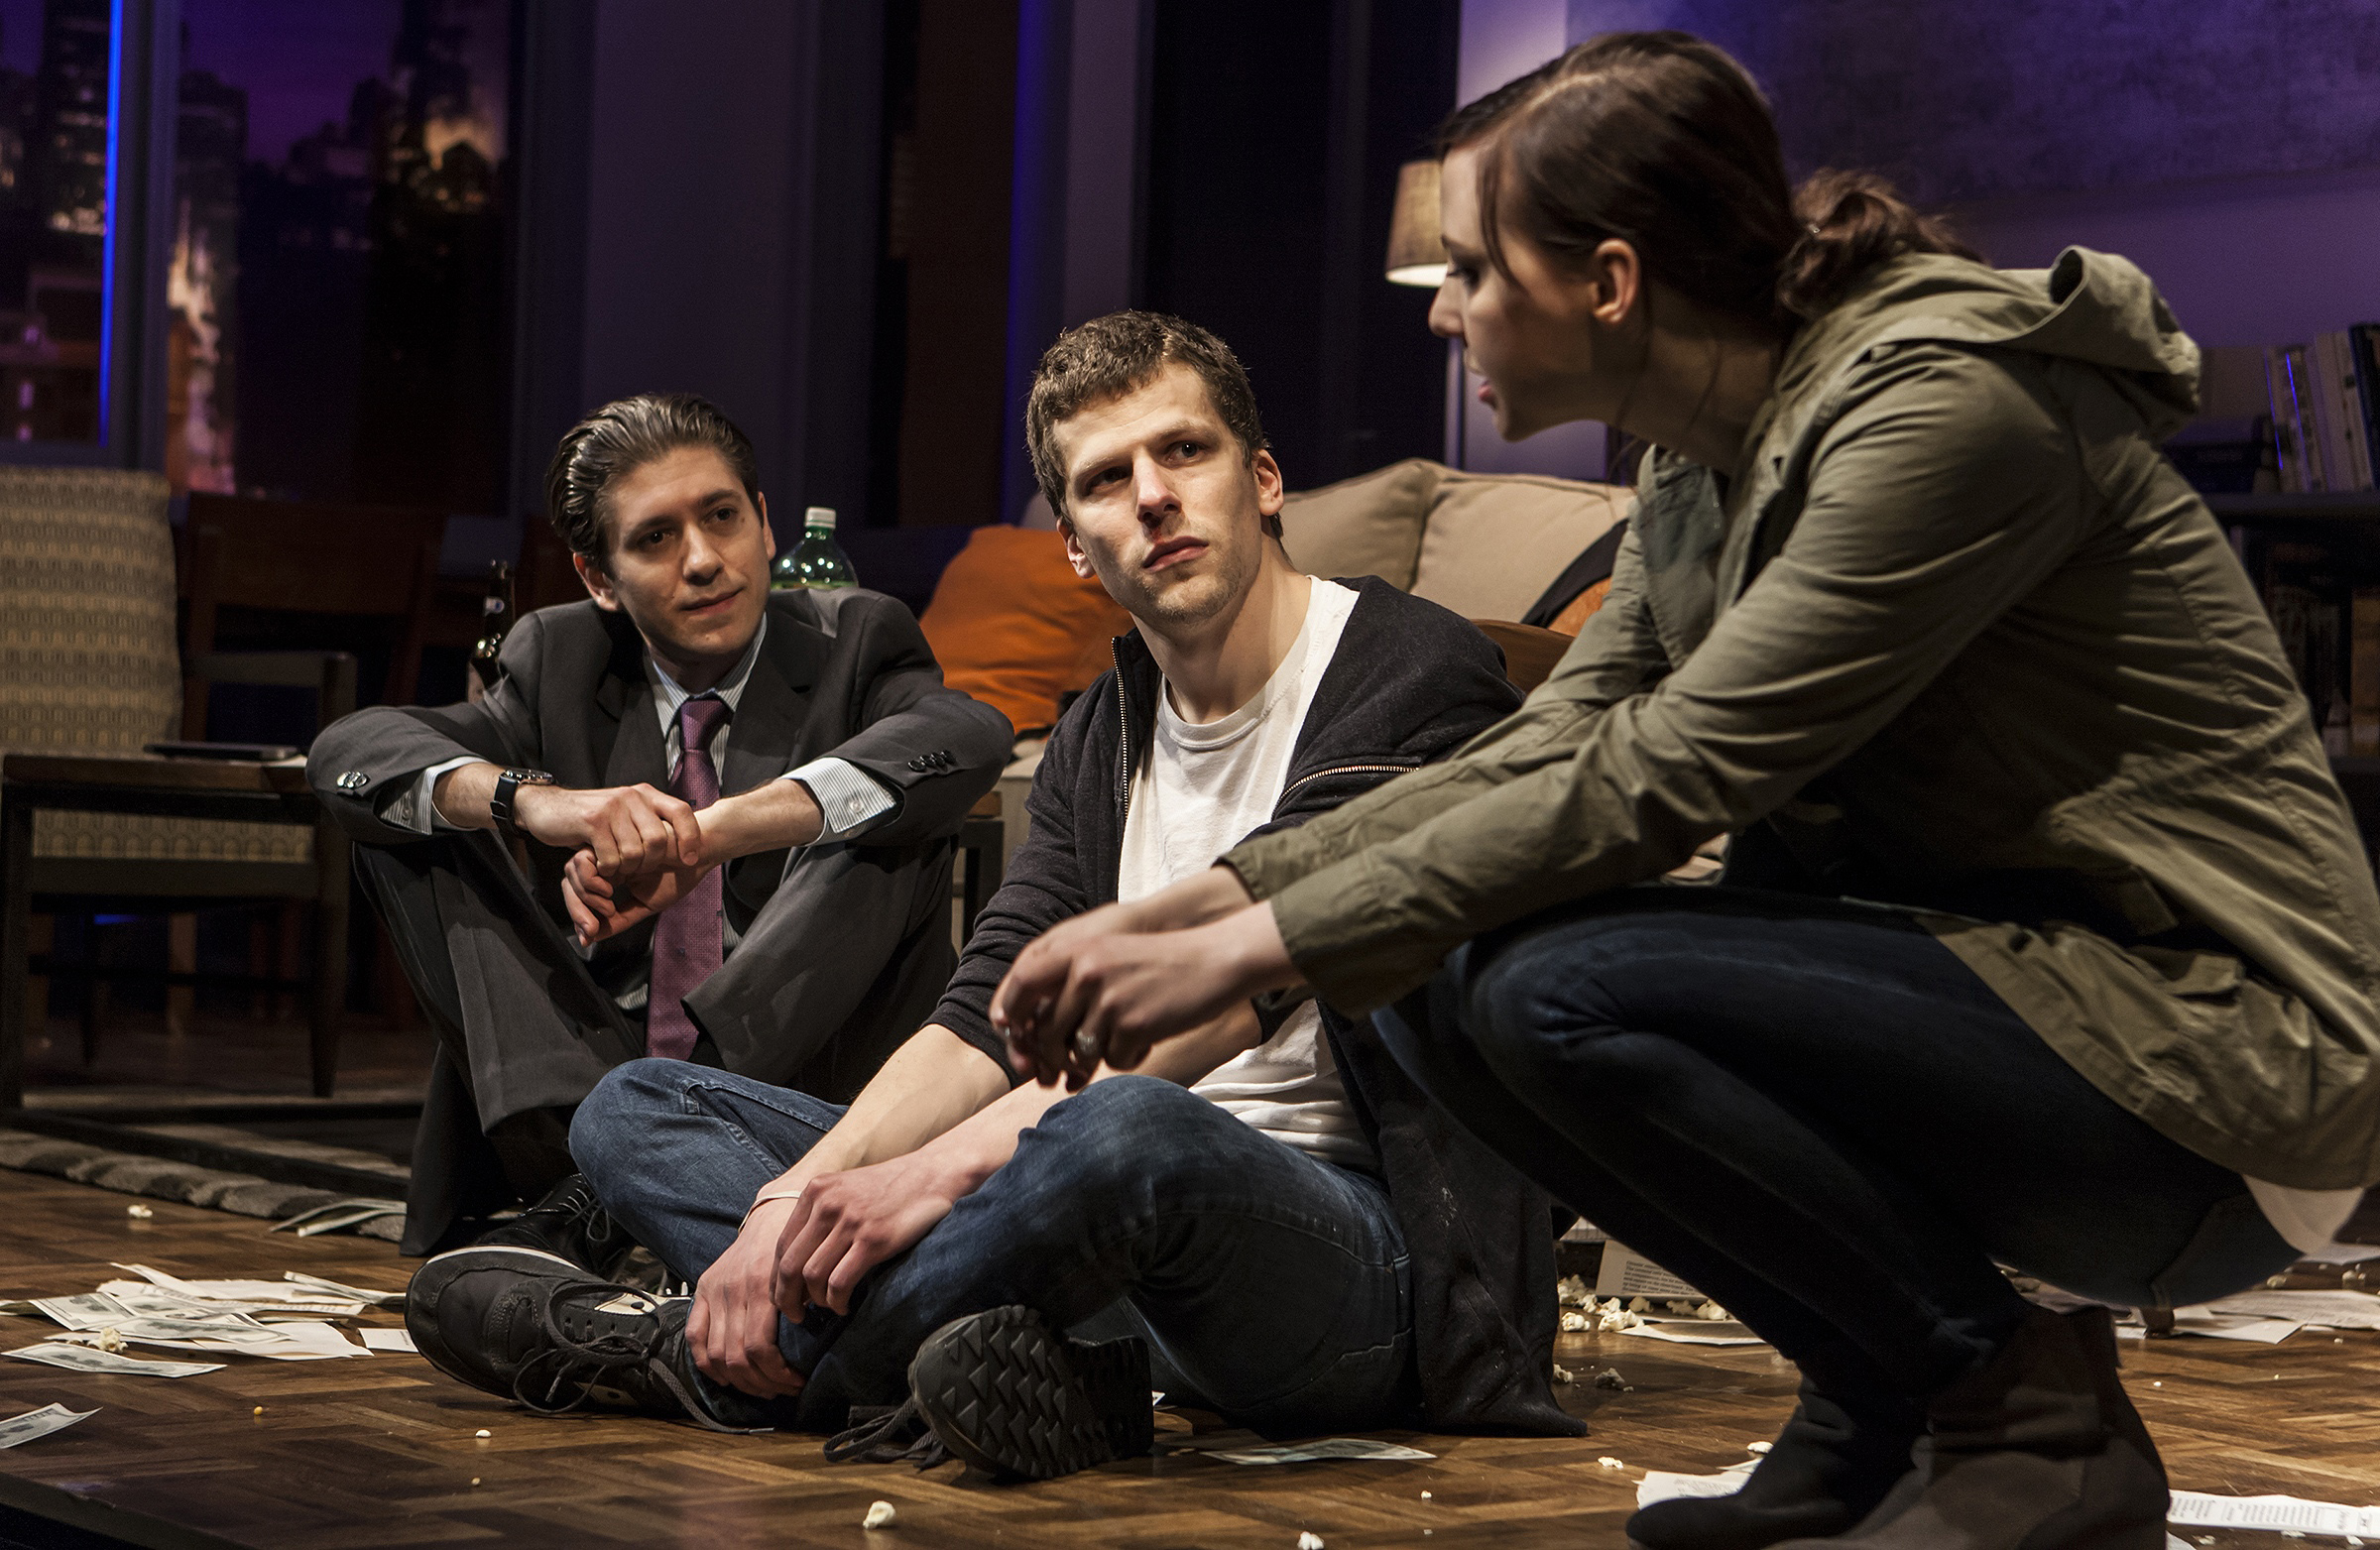 Pictured: Michael Zegen, Jesse Eisenberg & Erin Darke in The New Group production, The Spoils, a new play by Jesse Eisenberg, directed by Scott Elliott. A limited Off-Broadway engagement plays through June 28 at The Pershing Square Signature Center. For more, please visit www.thenewgroup.org. PHOTO CREDIT: Monique Carboni.